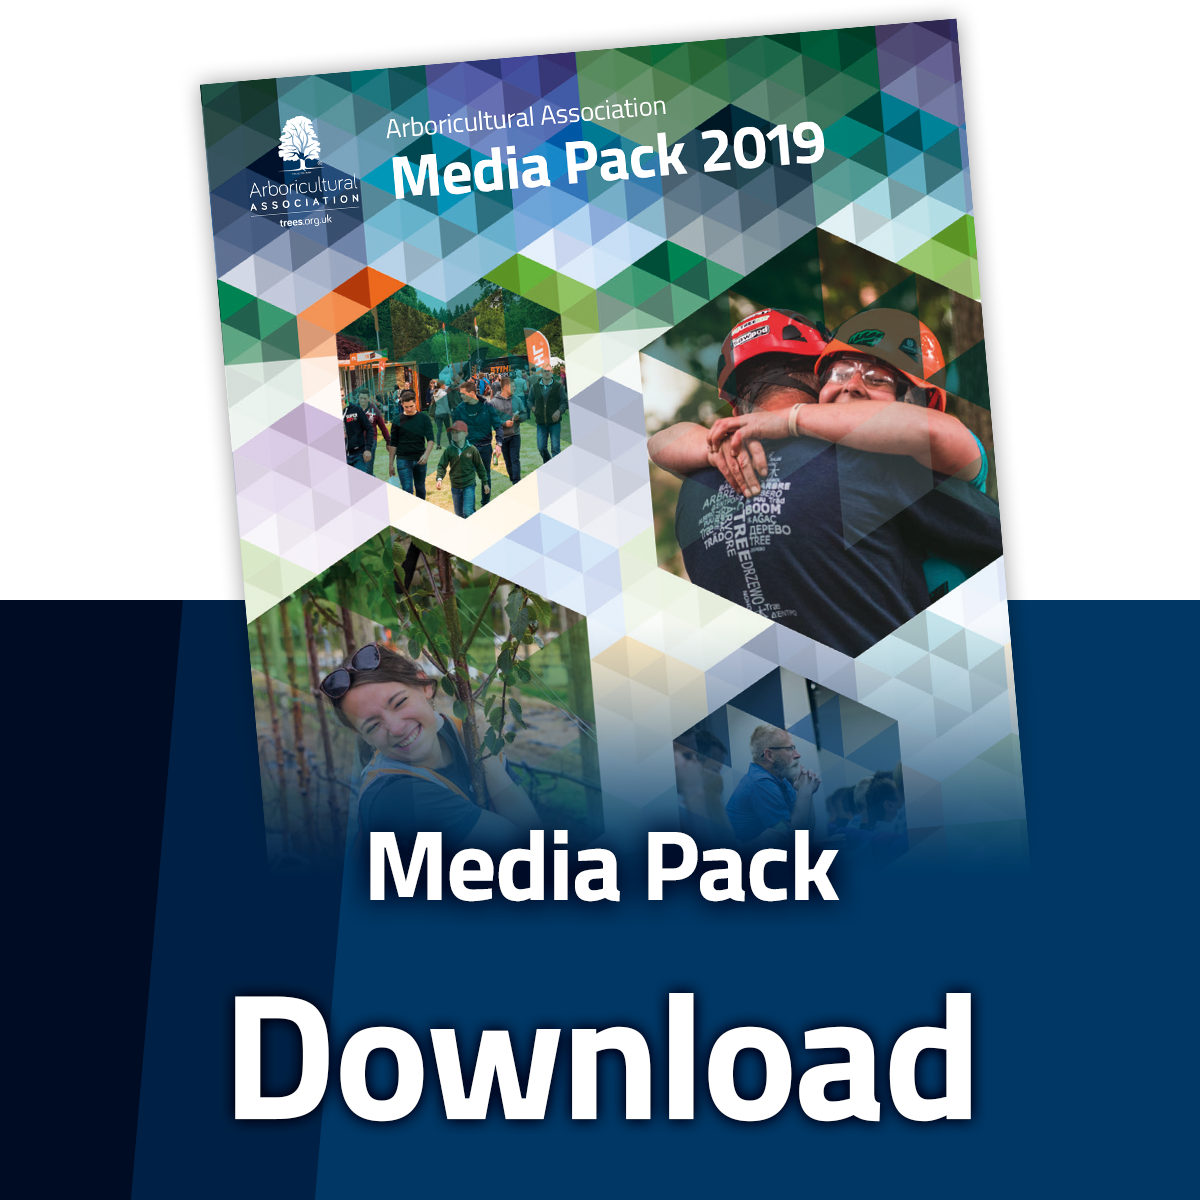 Download the AA Media Pack